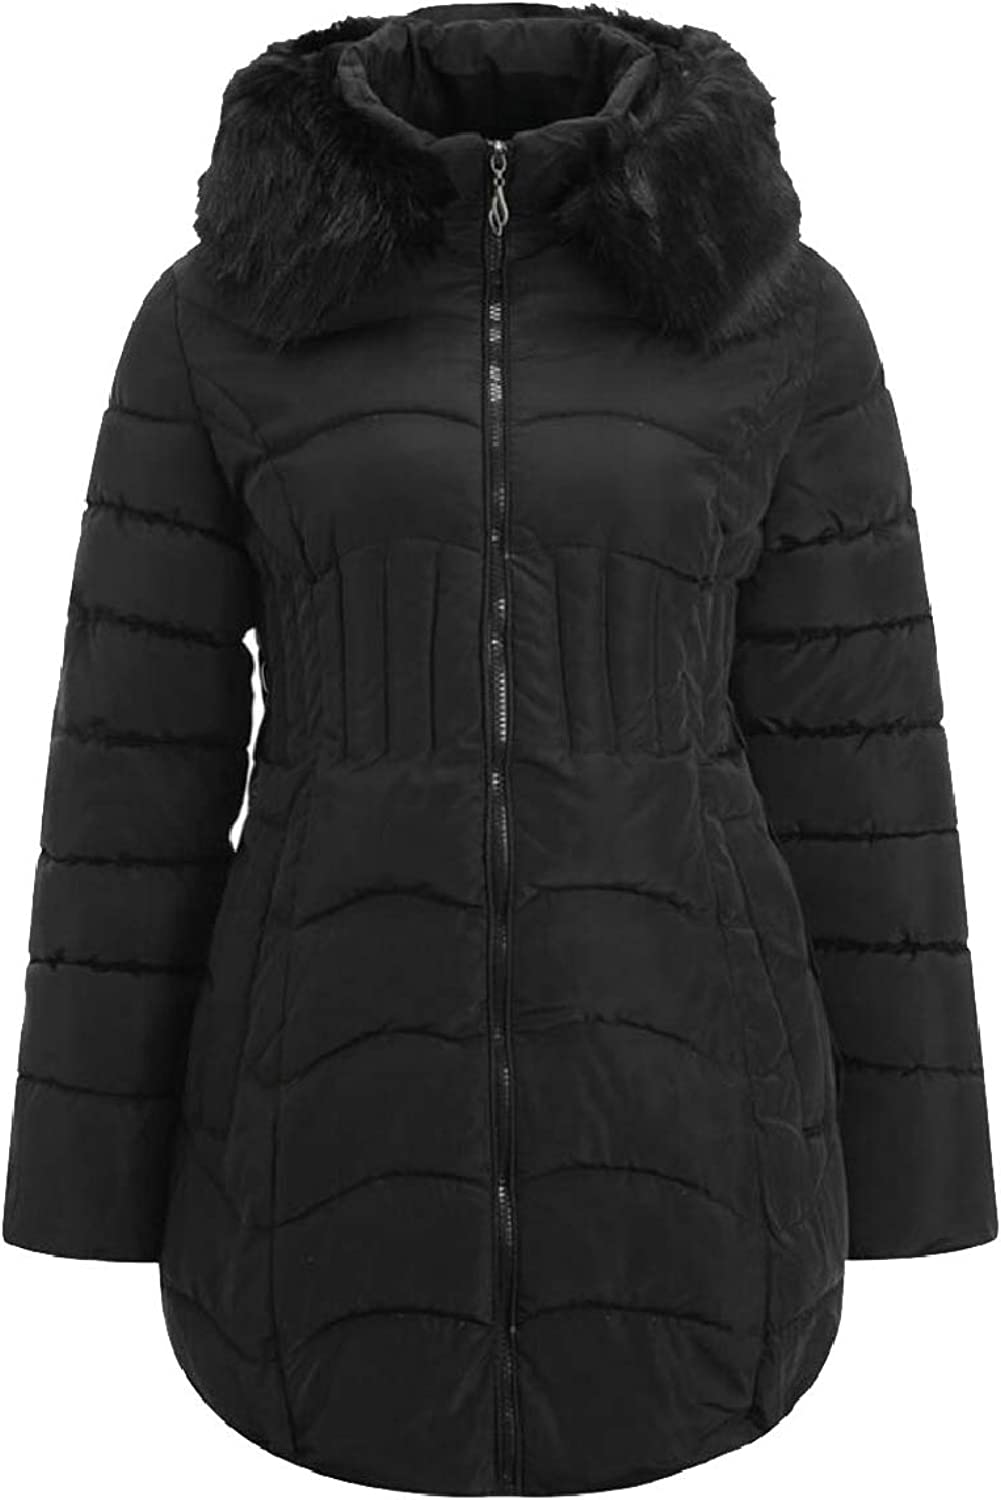 PujinggeCA Women's Thicken Quilted Winter FauxFur Collar Zipper Down Jacket Coat